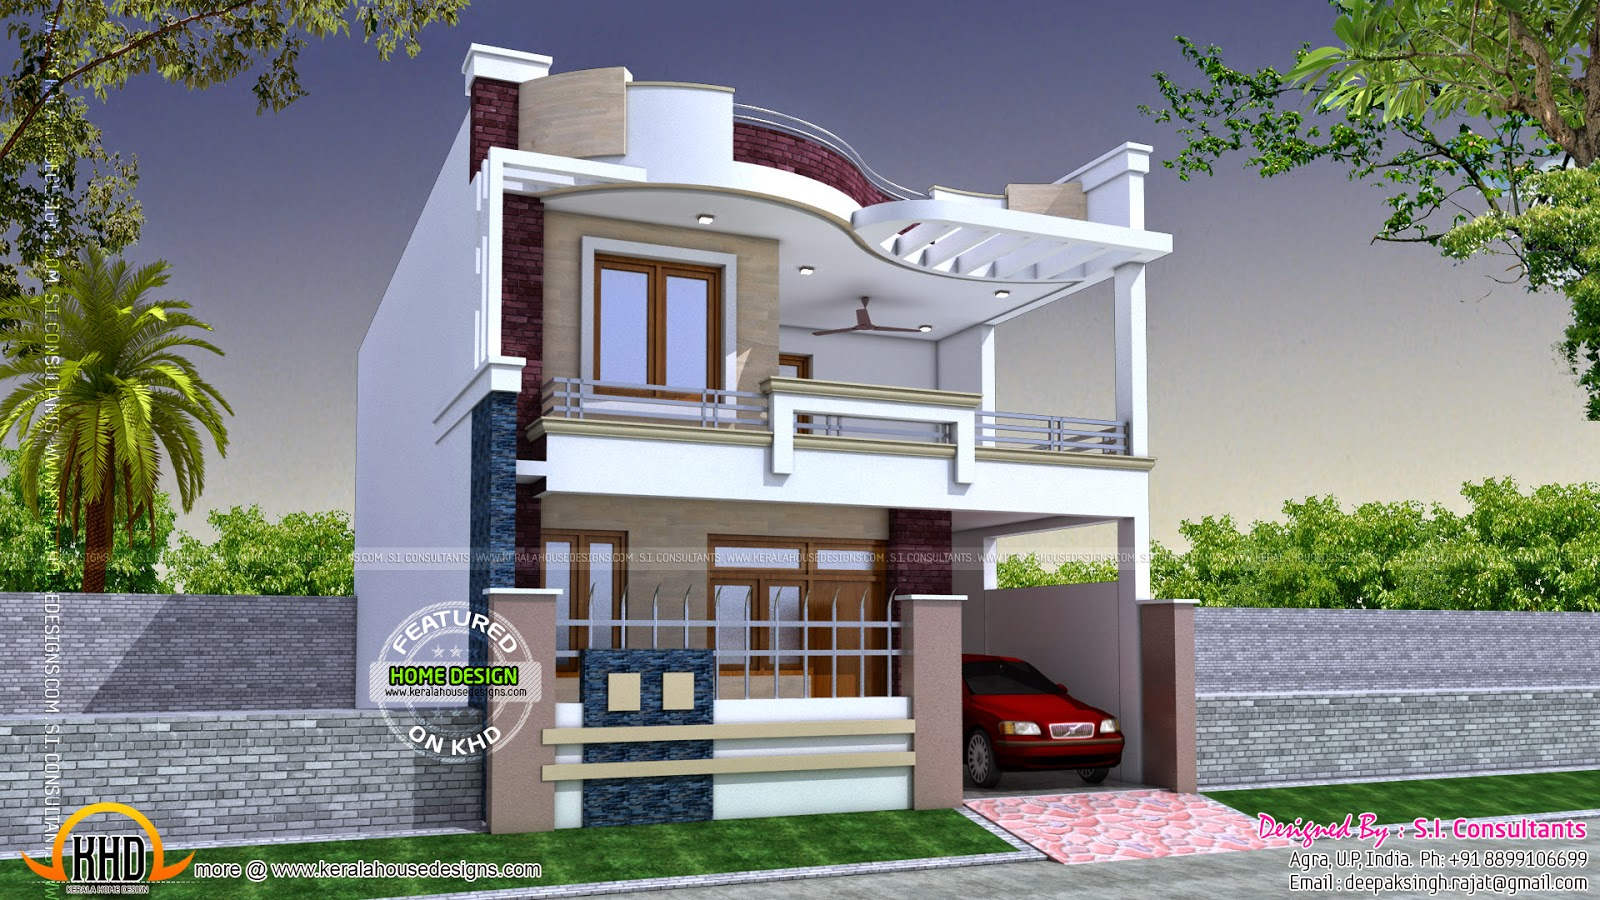 Small house architecture design in india minimalist home Arch design indian home plans